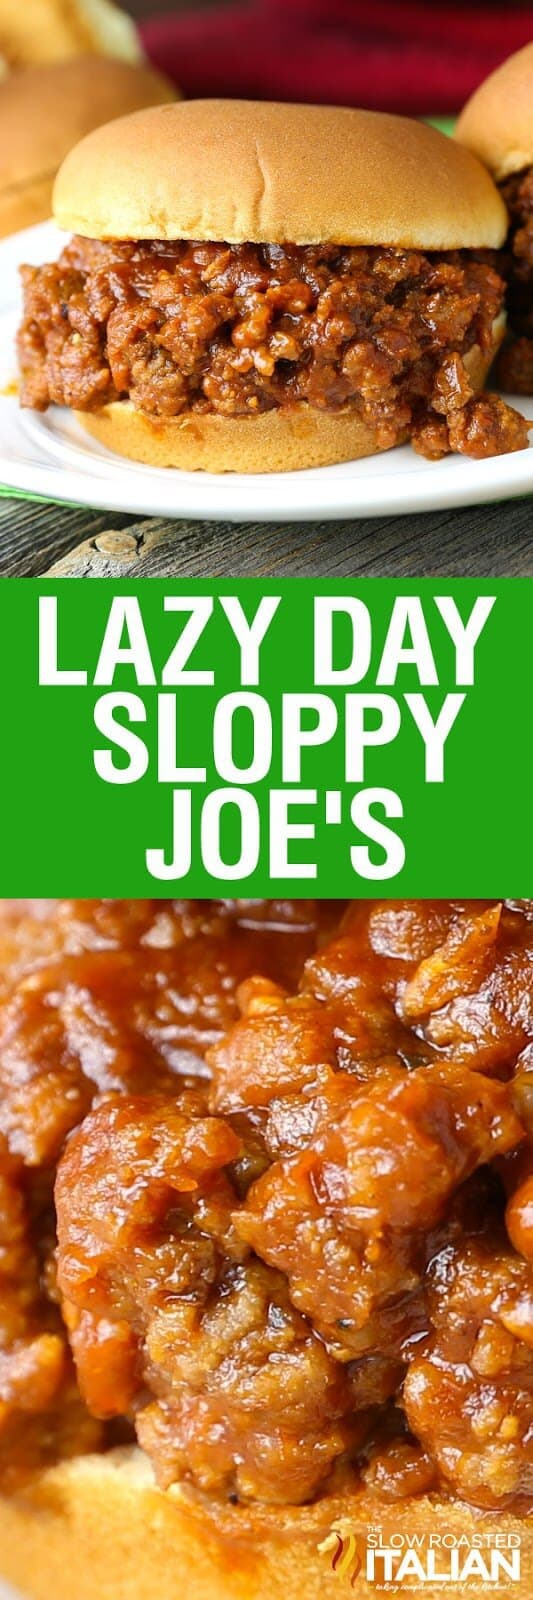 Lazy Day Sloppy Joe's